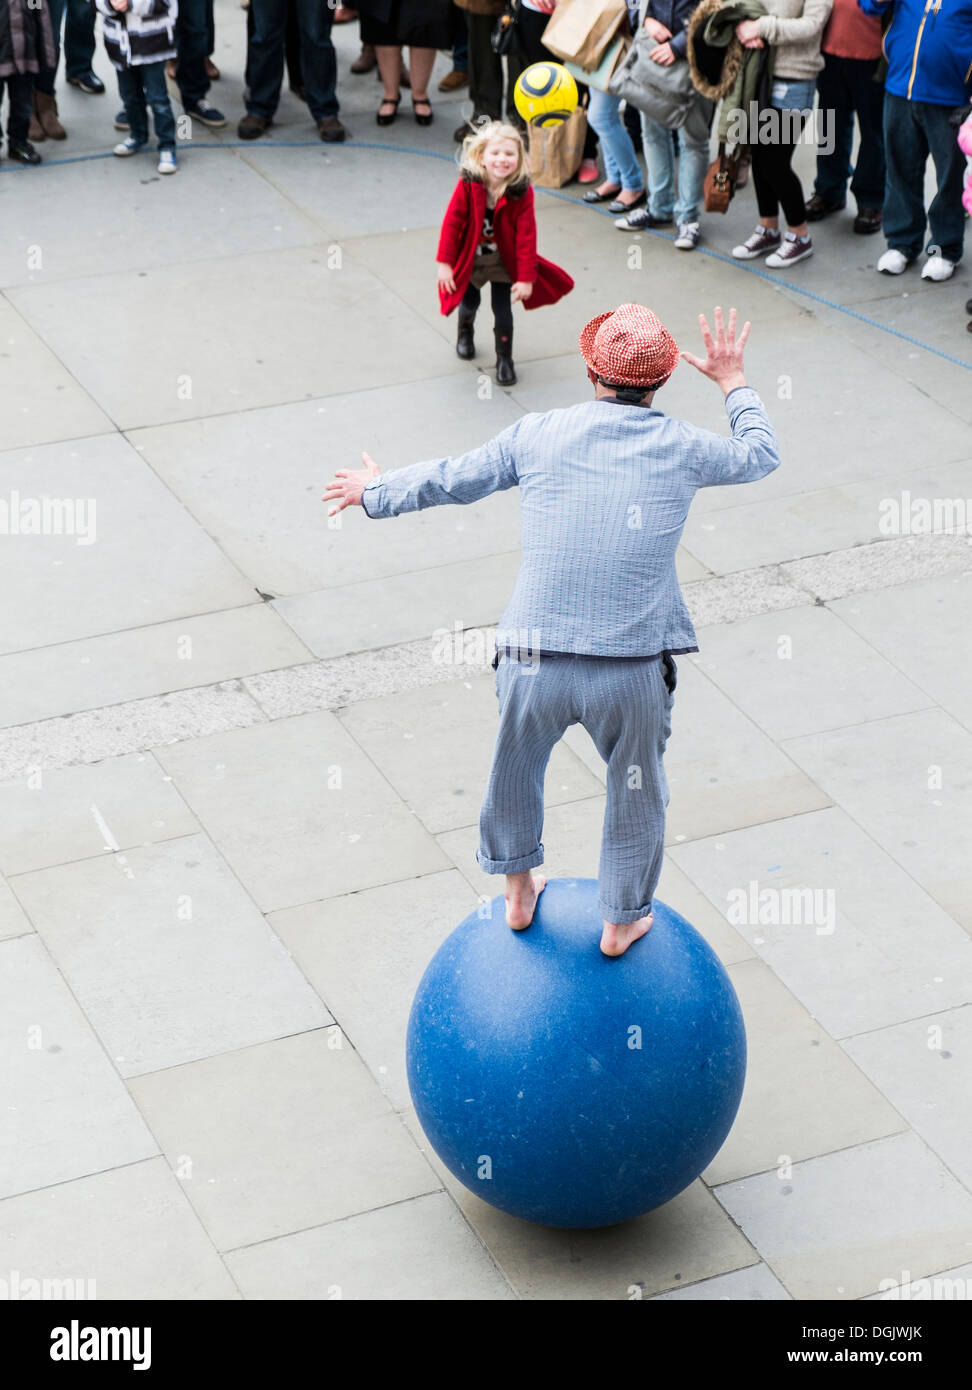 A street performer entertaining people in London. - Stock Image